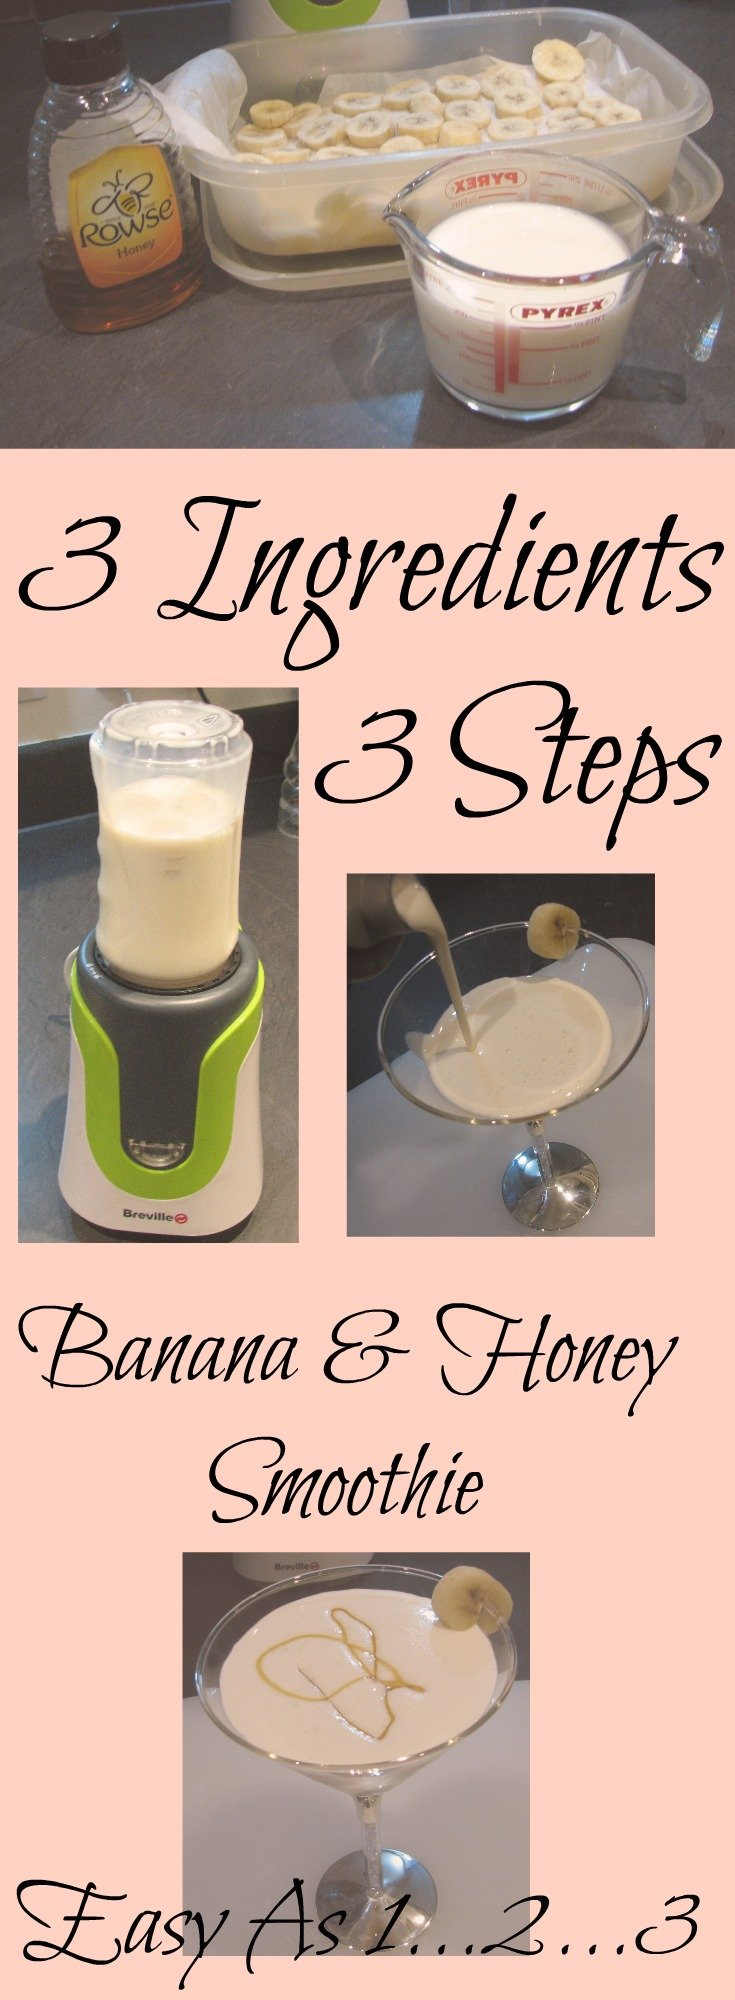 1...2...3 Banana & Honey Smoothie Recipe - 3 ingredients, 3 steps, very easy and most importantly very tasty!